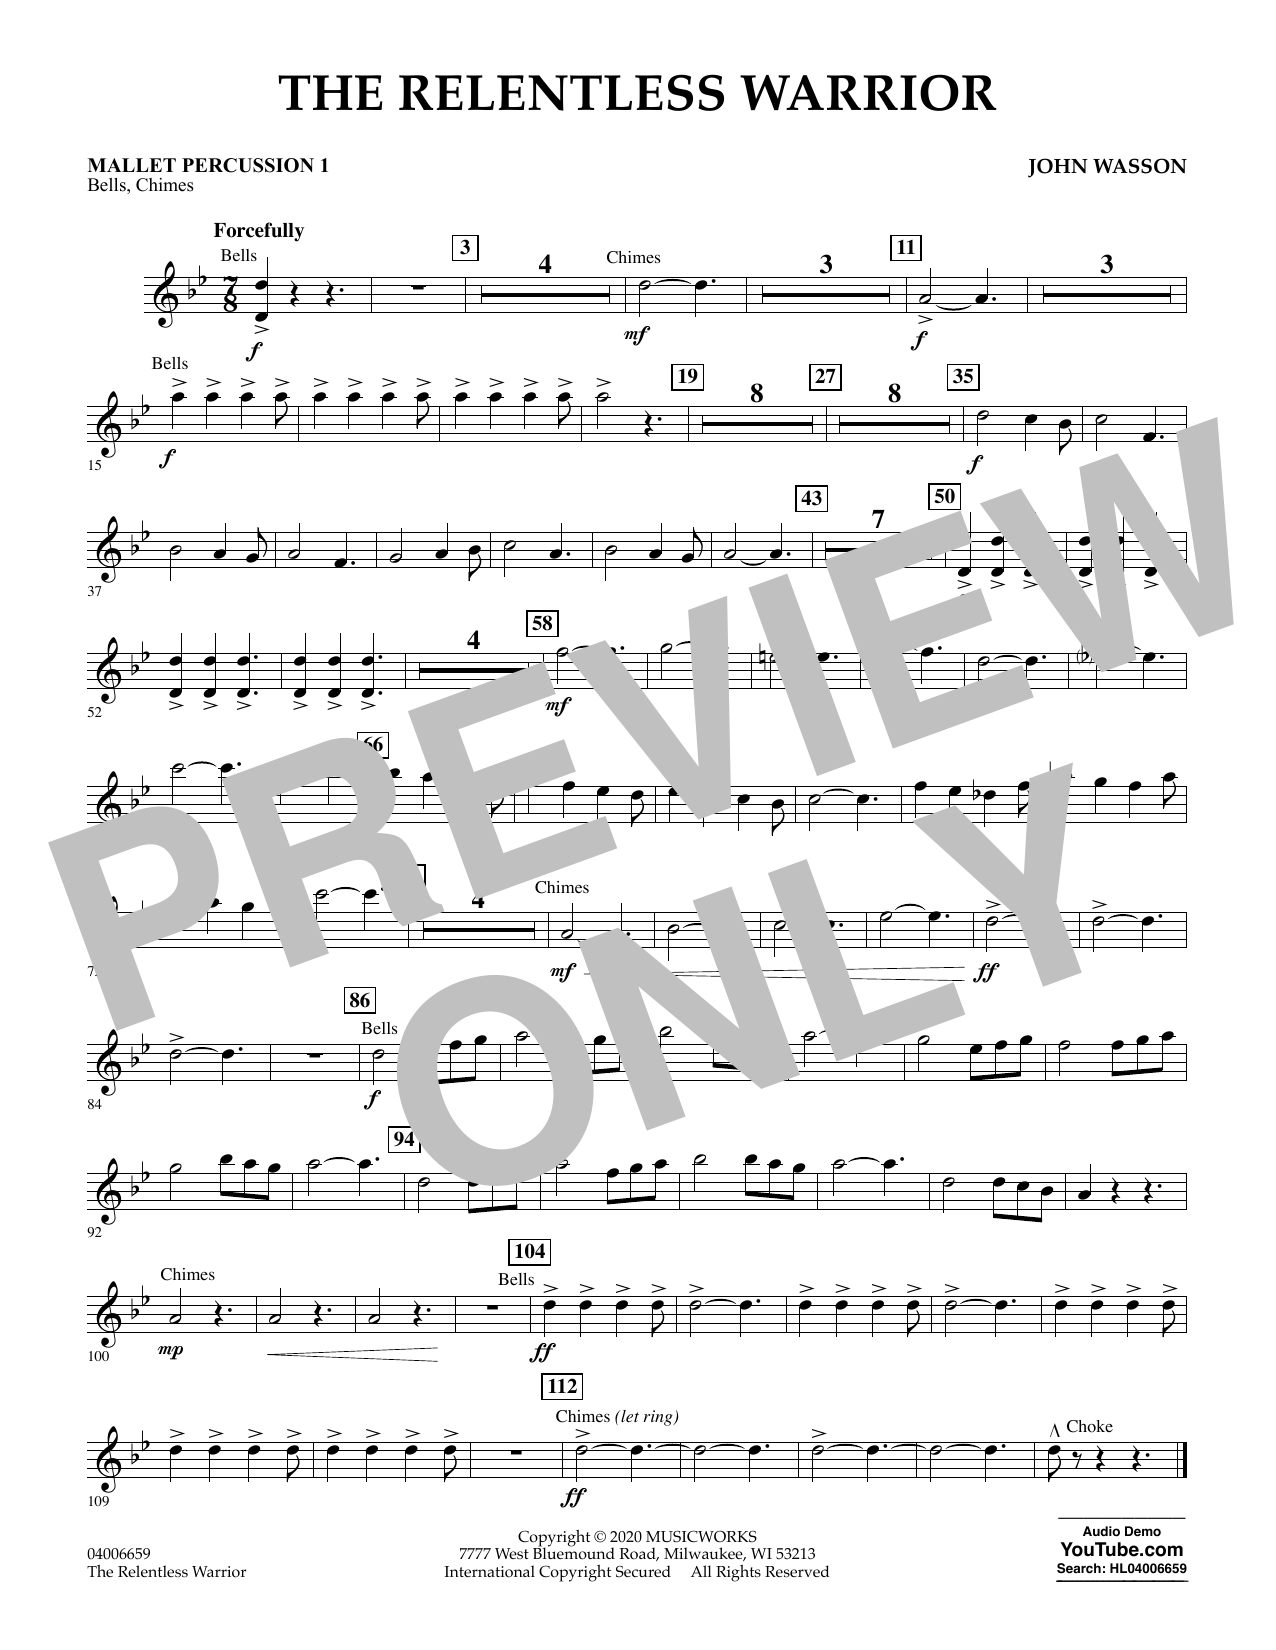 John Wasson The Relentless Warrior - Mallet Percussion 1 sheet music notes and chords. Download Printable PDF.